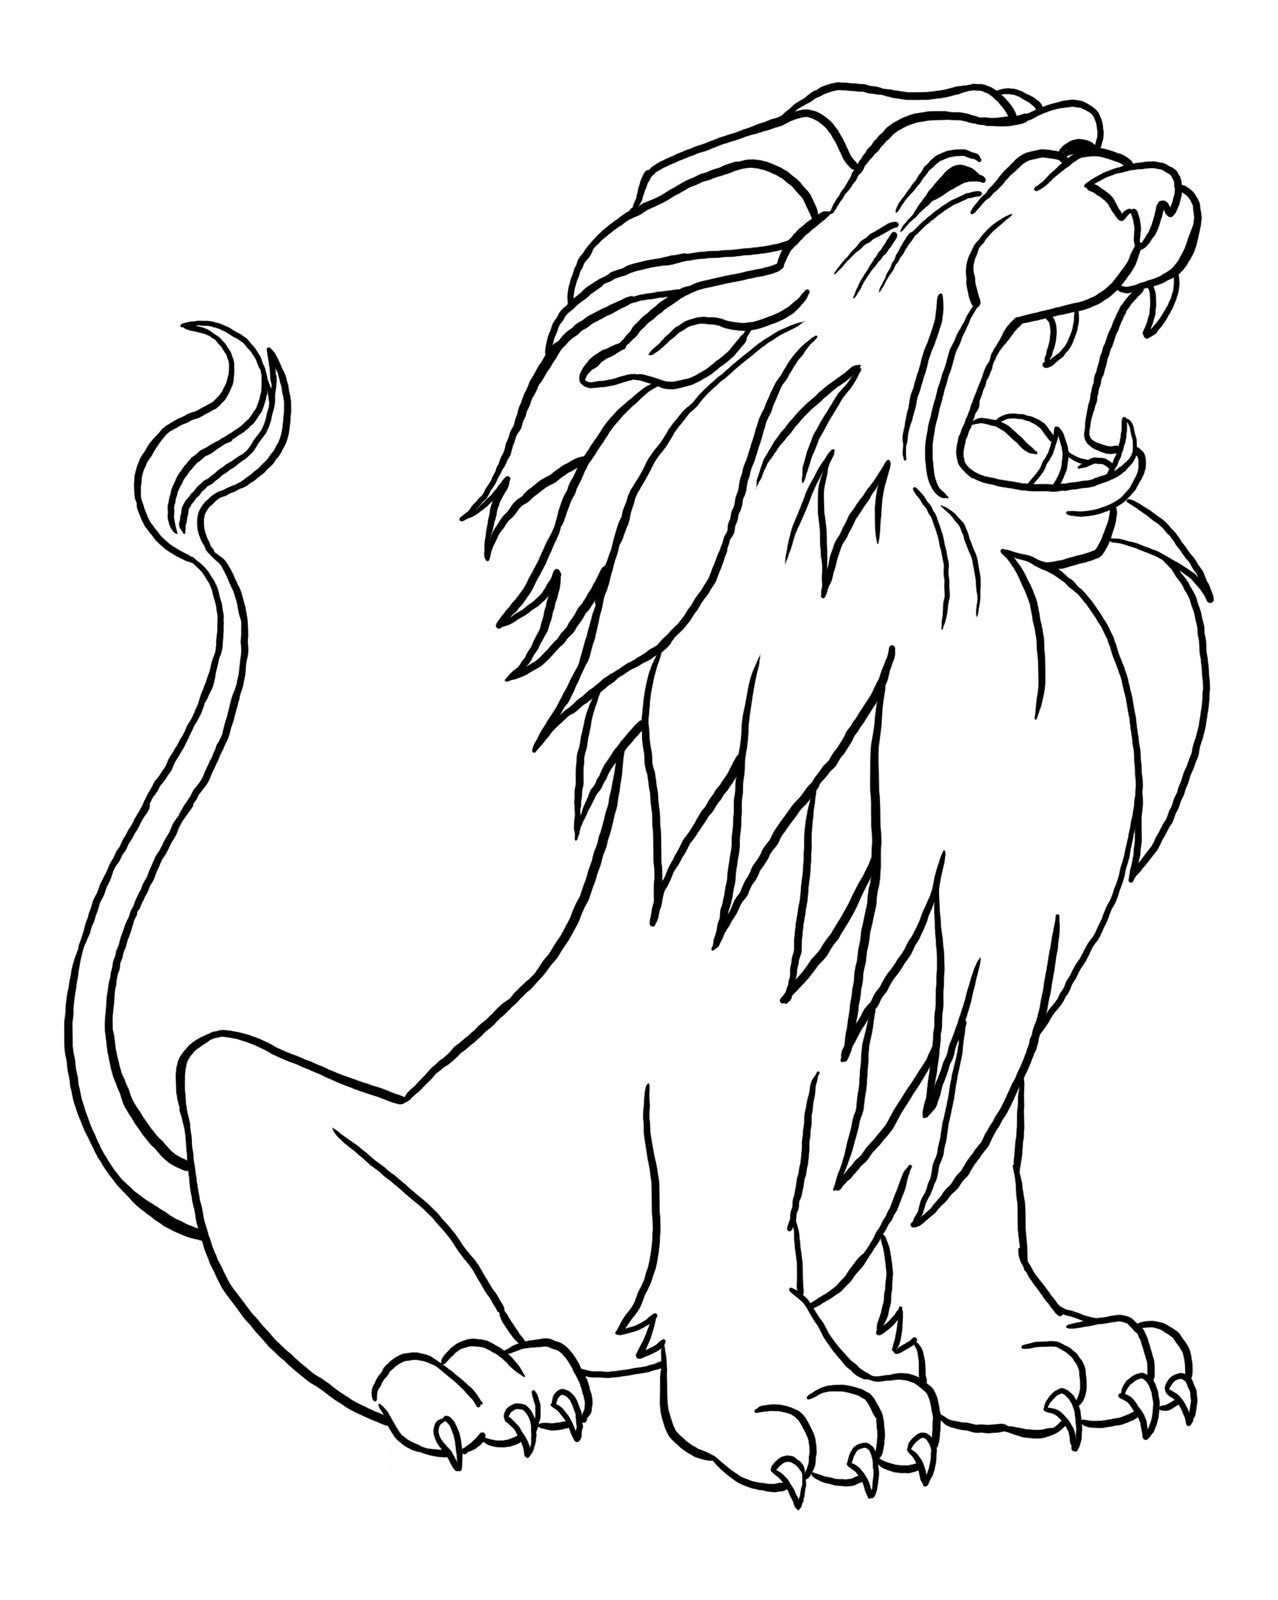 Library Lion Coloring Page Youngandtae Com In 2020 Lion Coloring Pages Cat Coloring Page Animal Coloring Pages